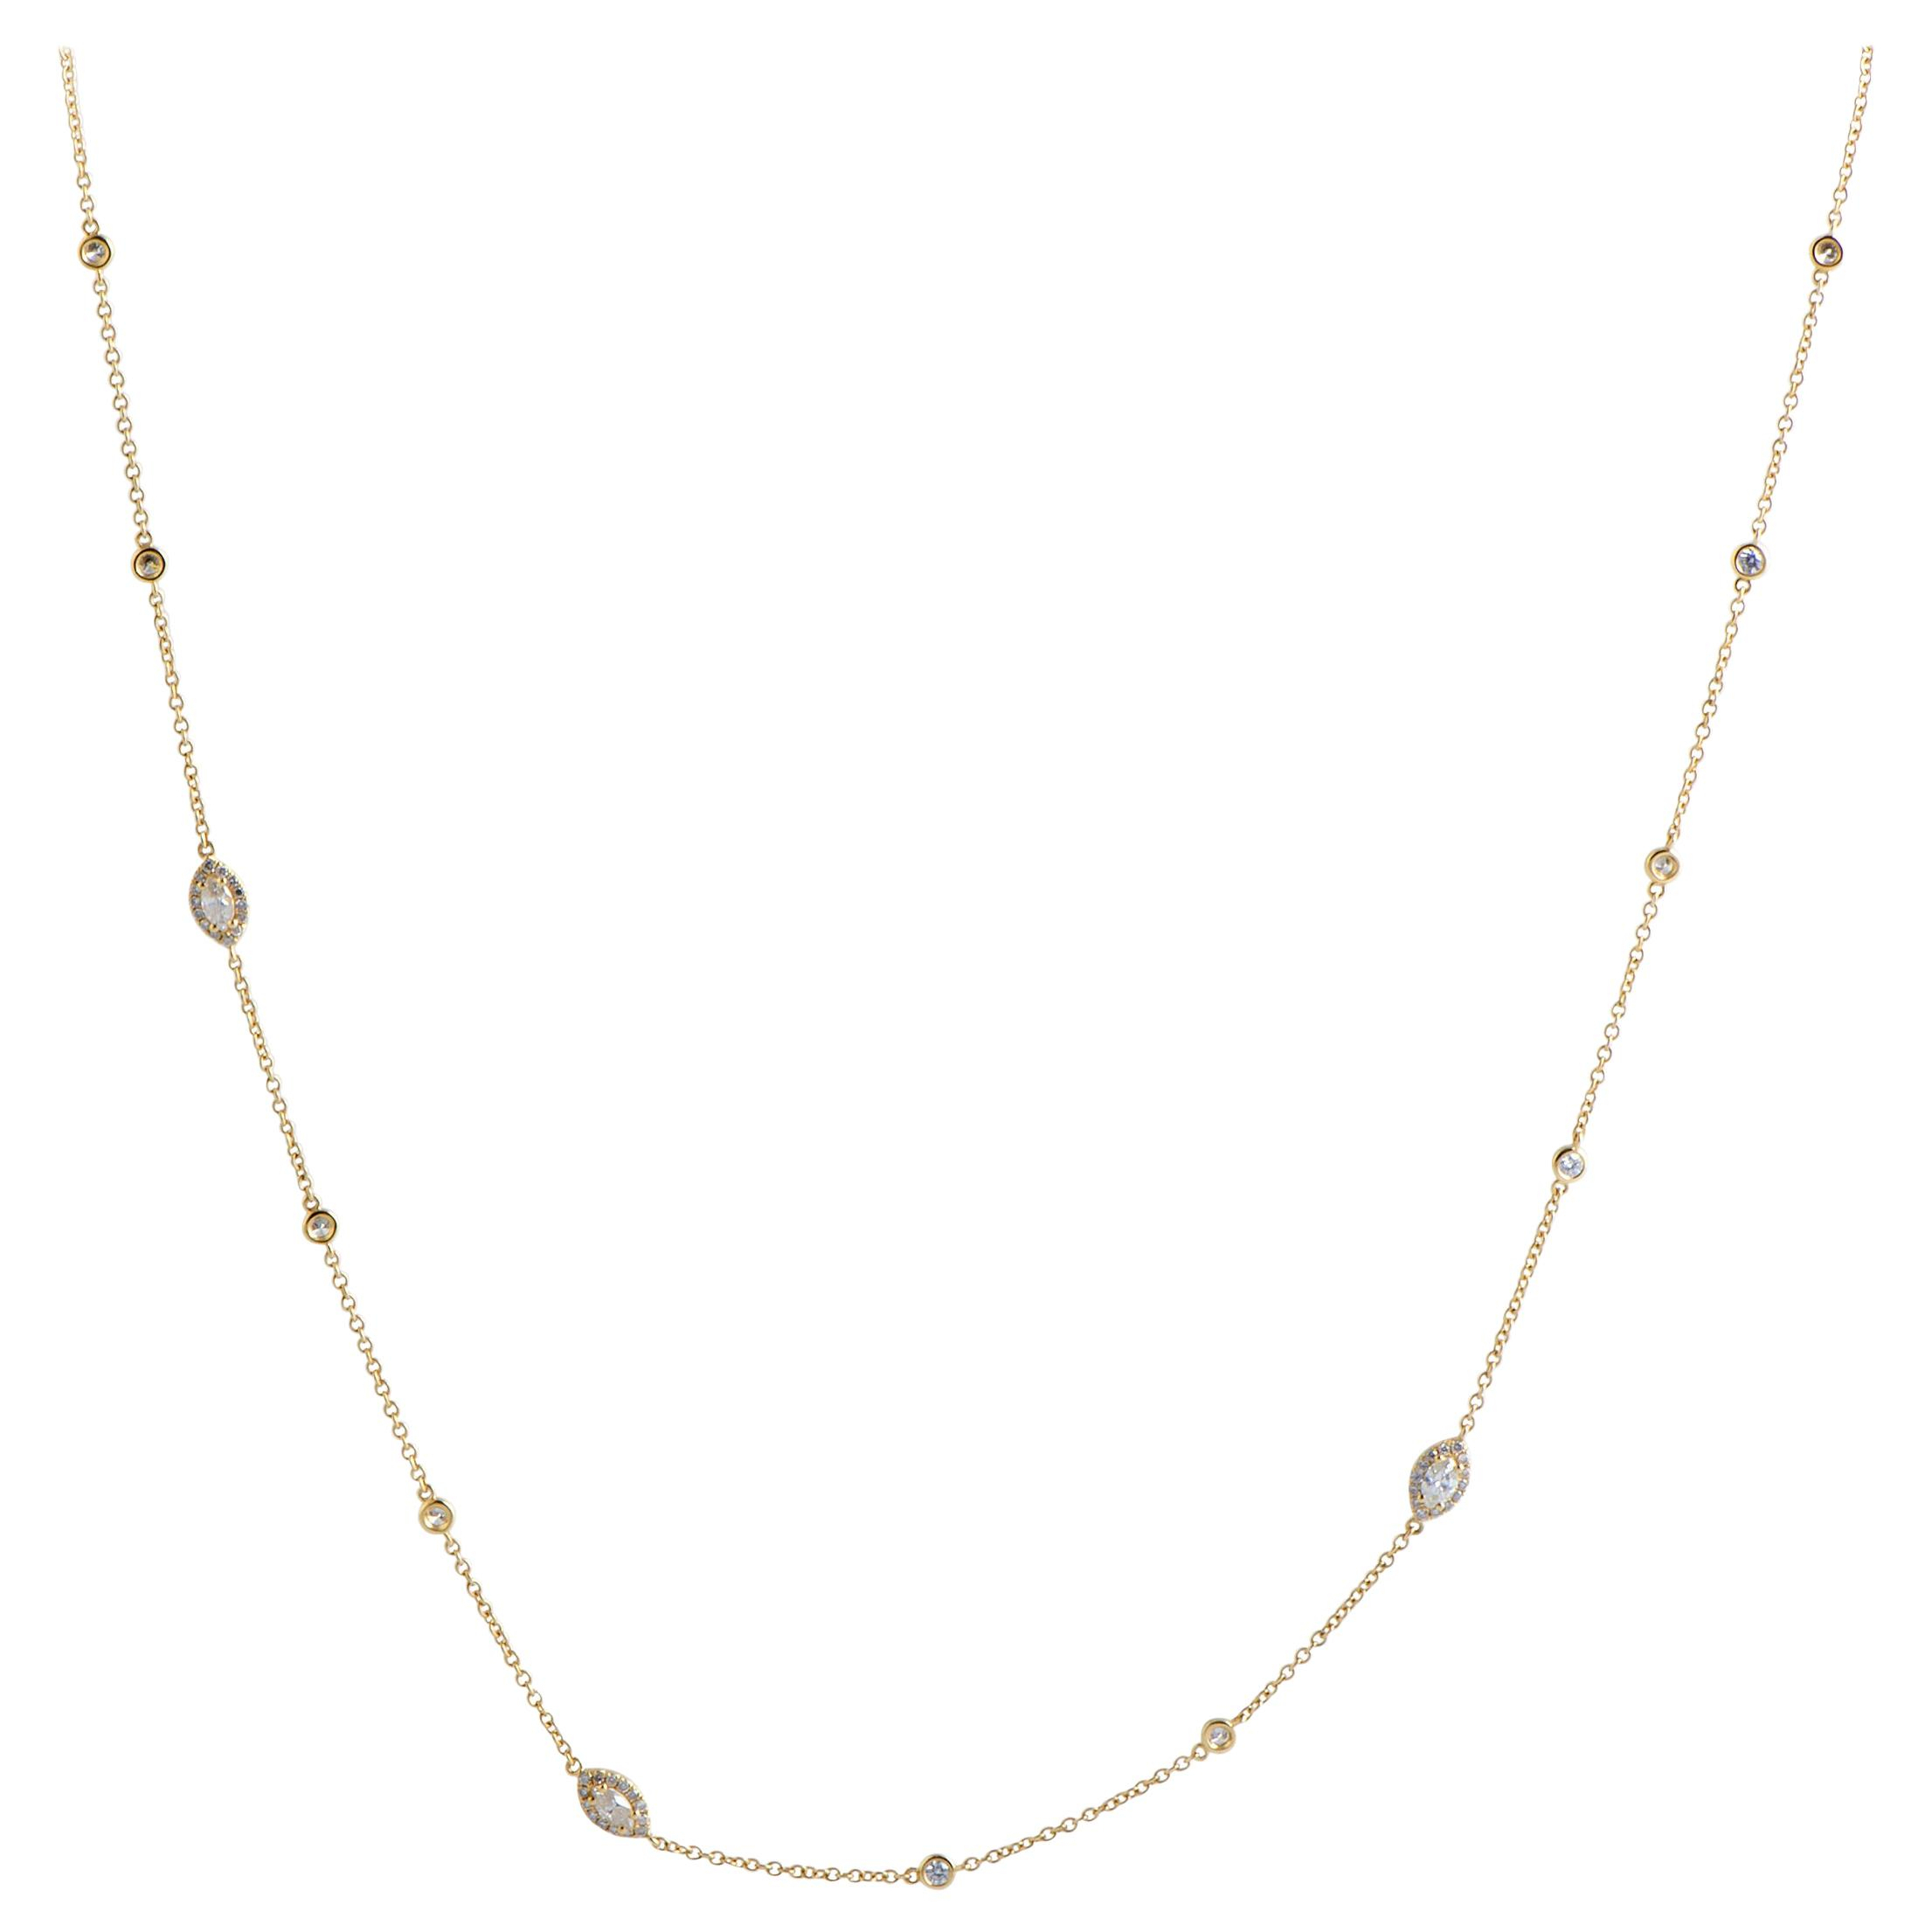 Lb Exclusive 18 Karat Gold Round And Marquise Diamonds Long Sautoir Necklace Intended For Latest Diamond Sautoir Necklaces In Yellow Gold (View 12 of 25)